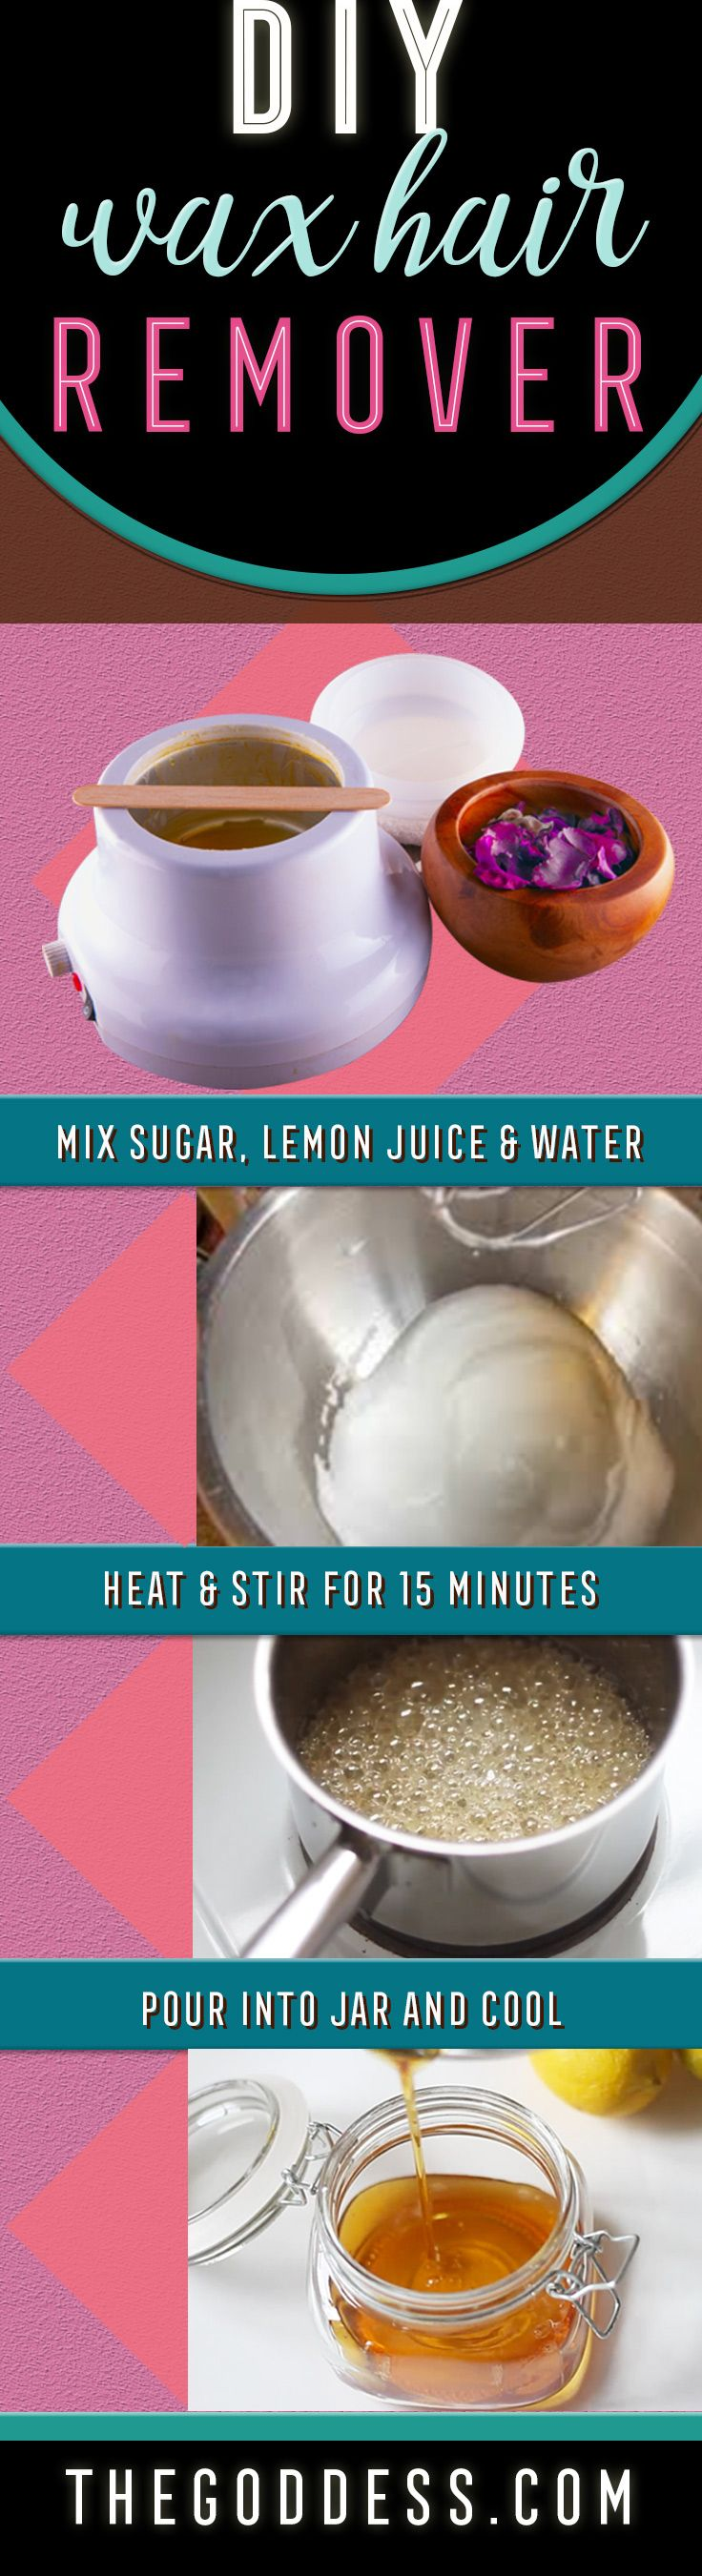 DIY Wax Hair Remover Recipe and Tutorial - Homemade Sugar Wax for Easy Hair Removal At Home - Cool Beauty Tips and Tricks for Those On a Budget - Cheap and Simple Recipe to Make Sugaring Wax, Better Than Shaving